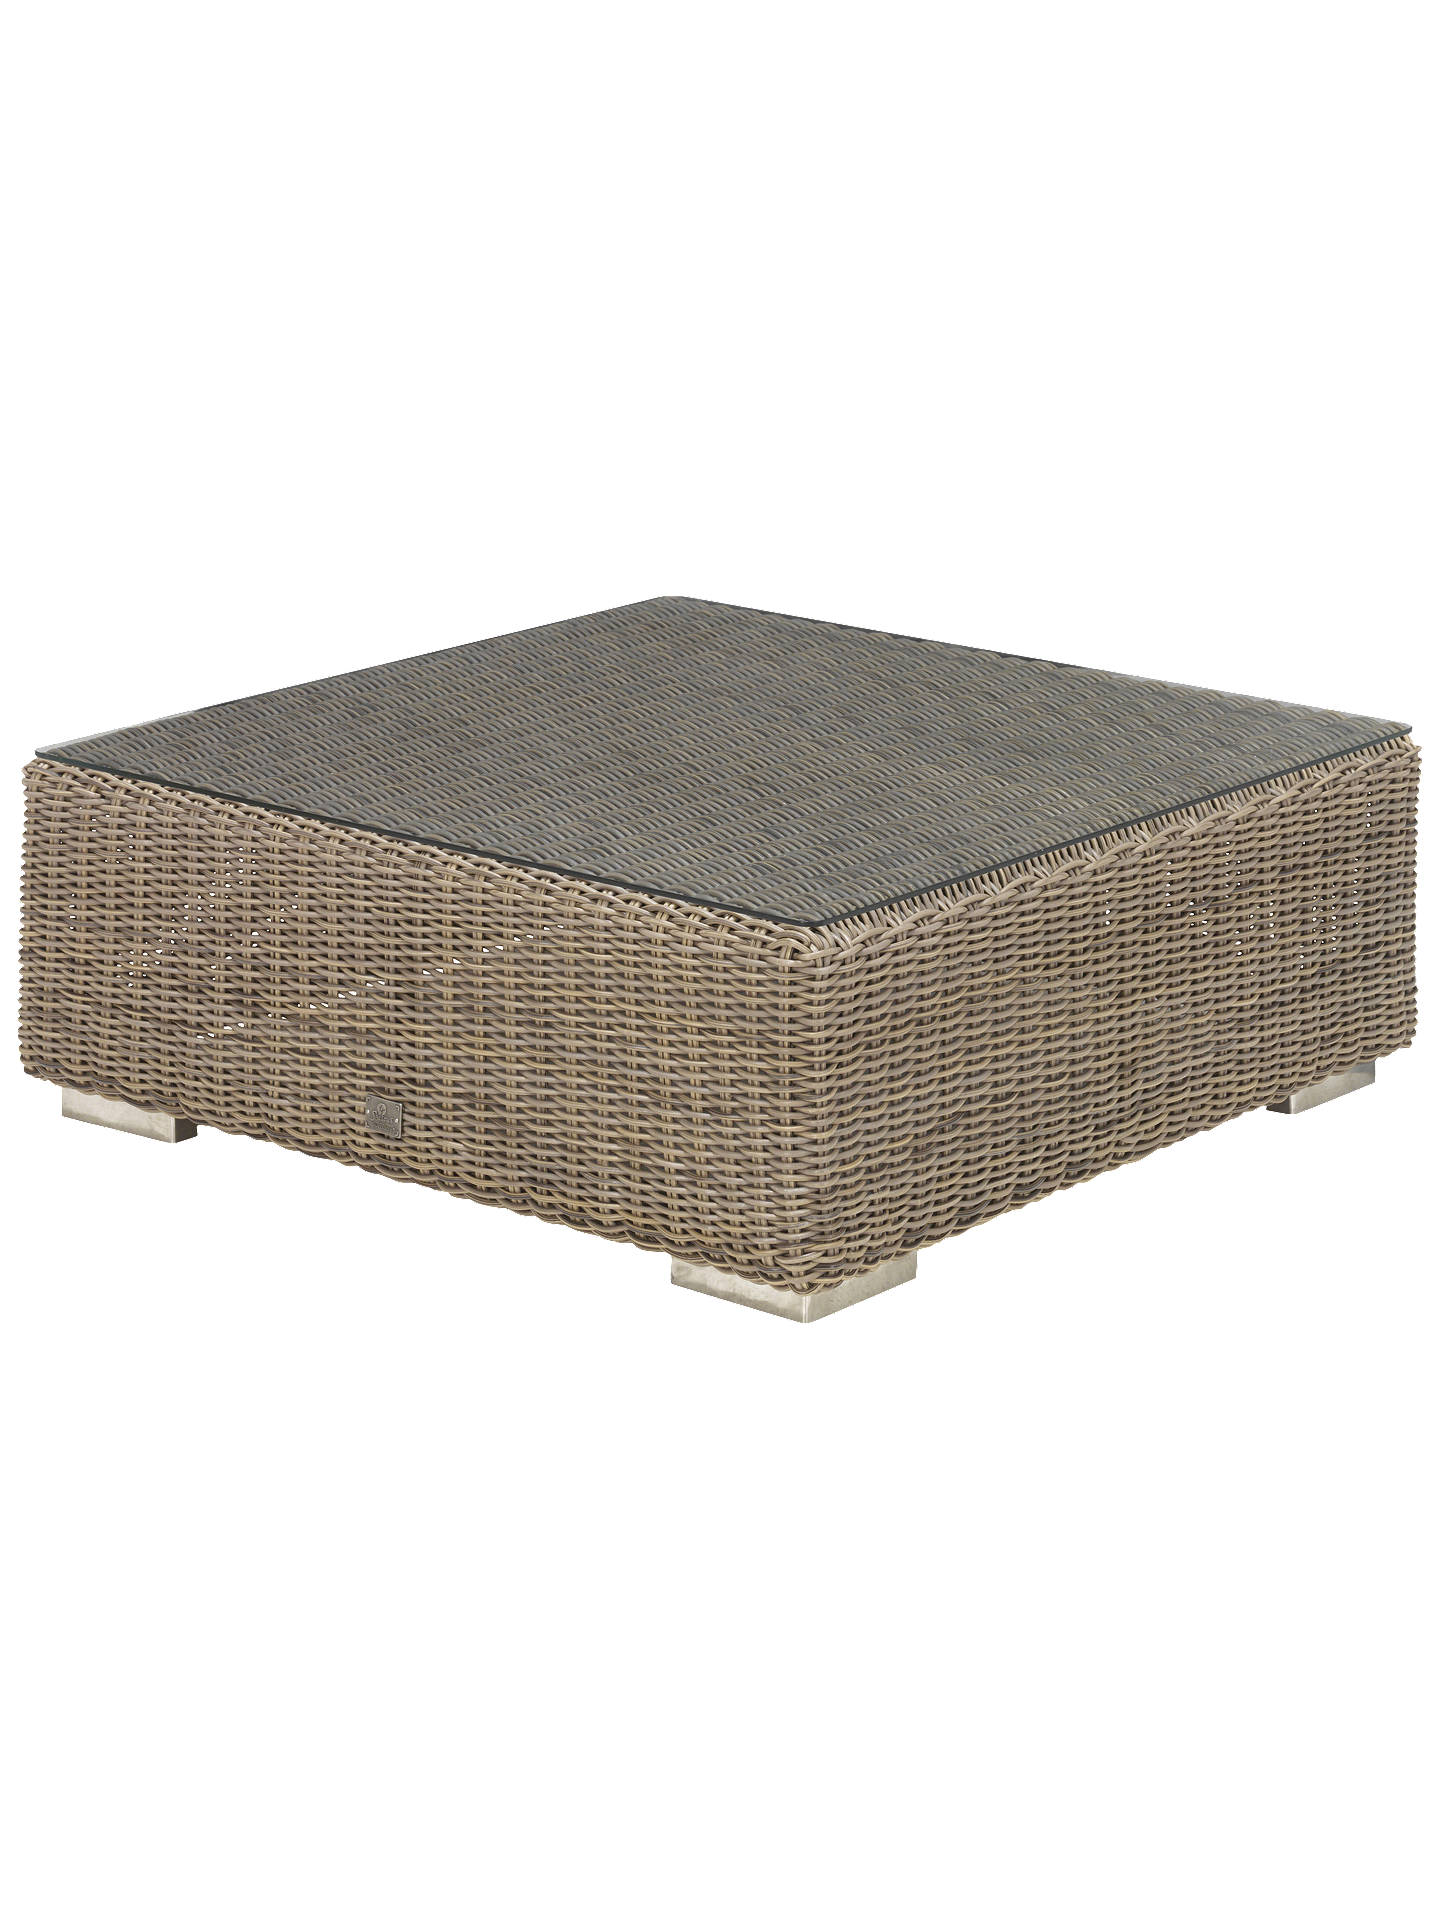 Buy4 Seasons Outdoor Kingston Square Coffee Table Online at johnlewis.com